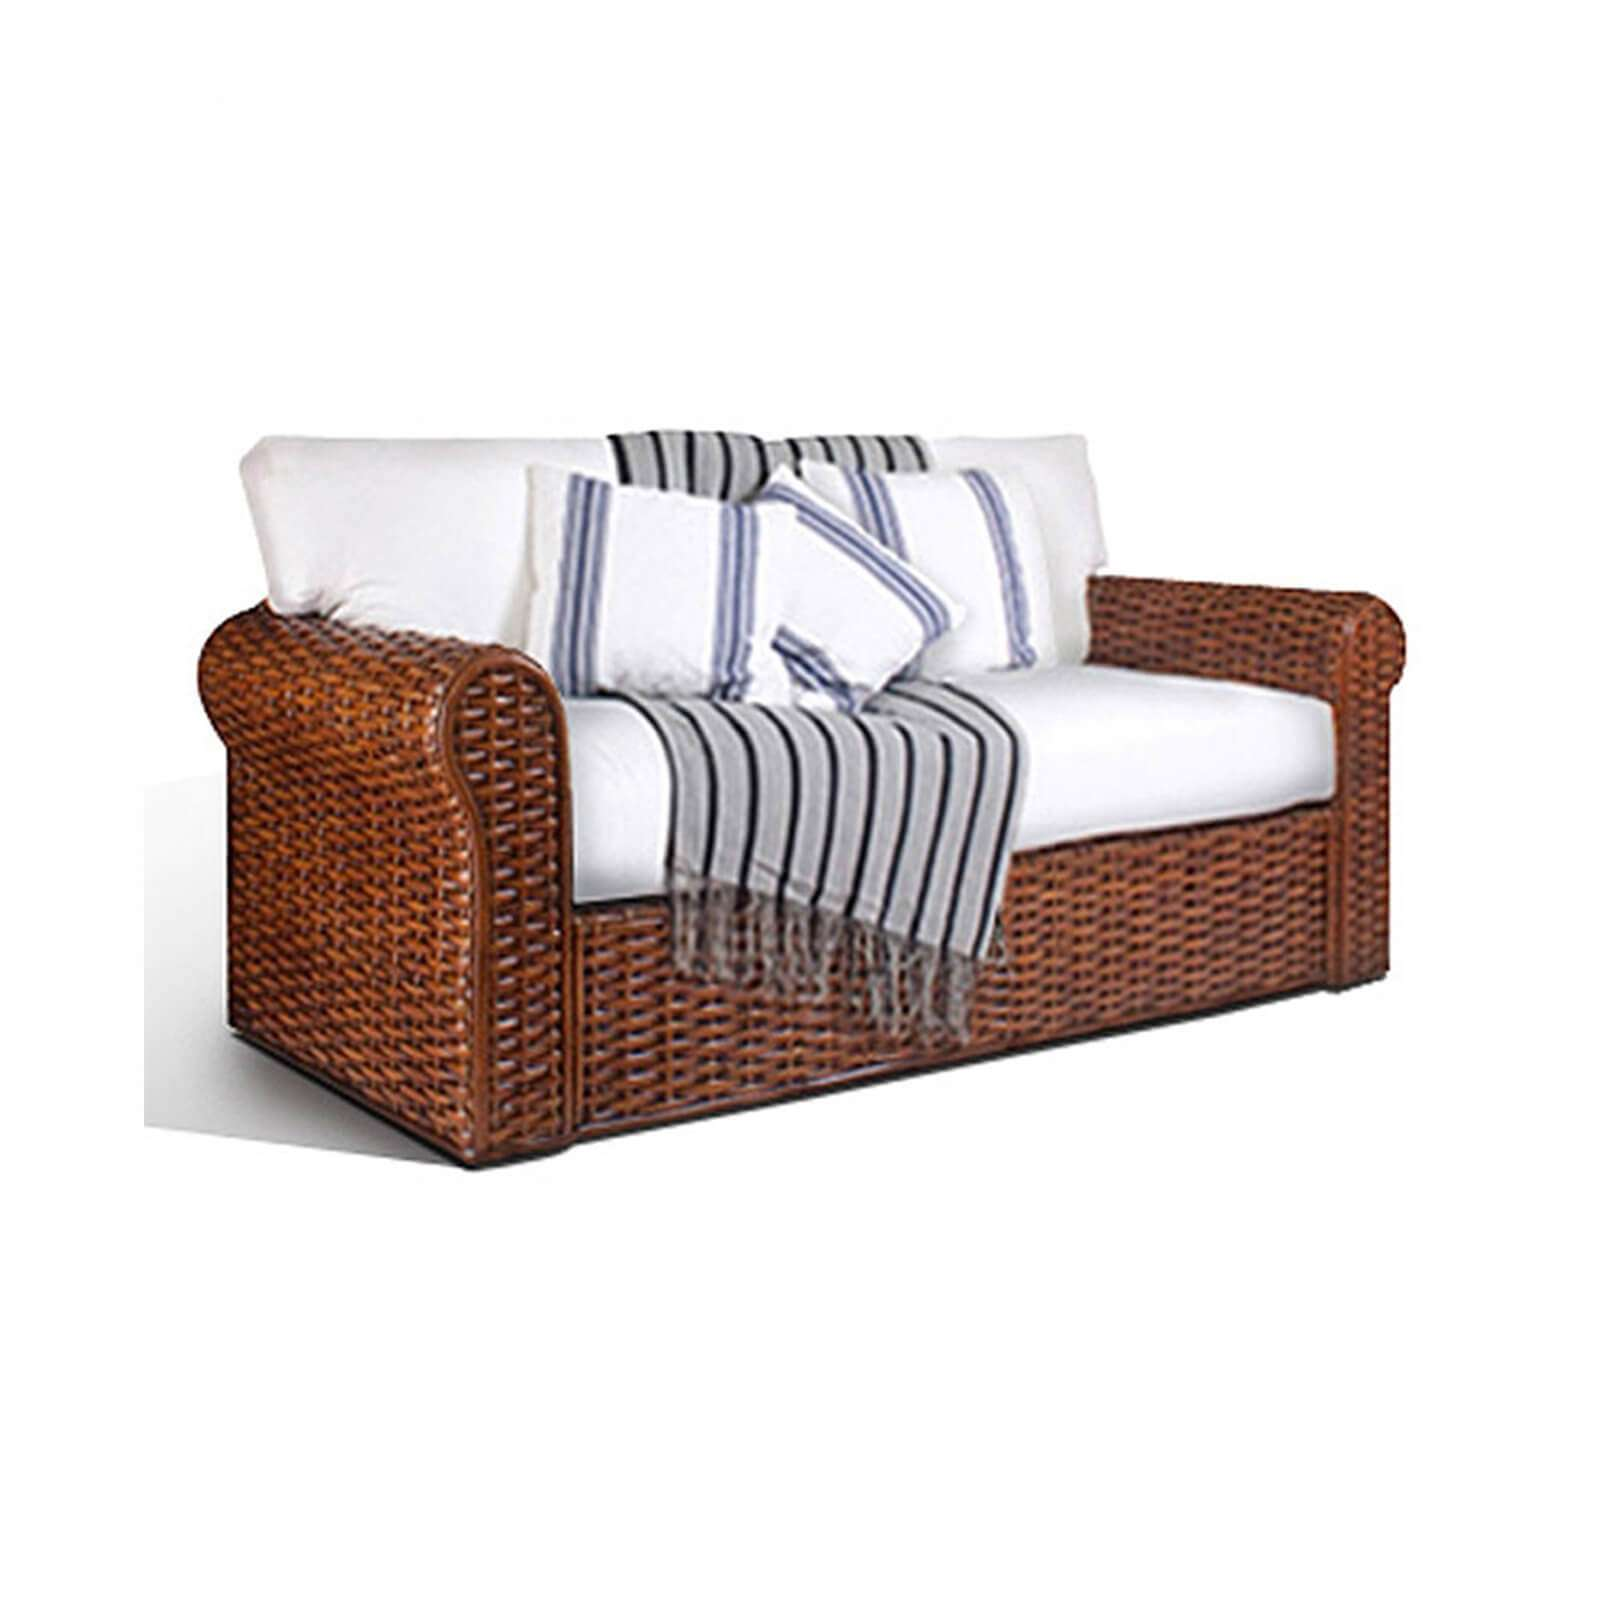 1 TUXEDO LOVE SEAT - STUART MEMBERY HOME COLLECTION